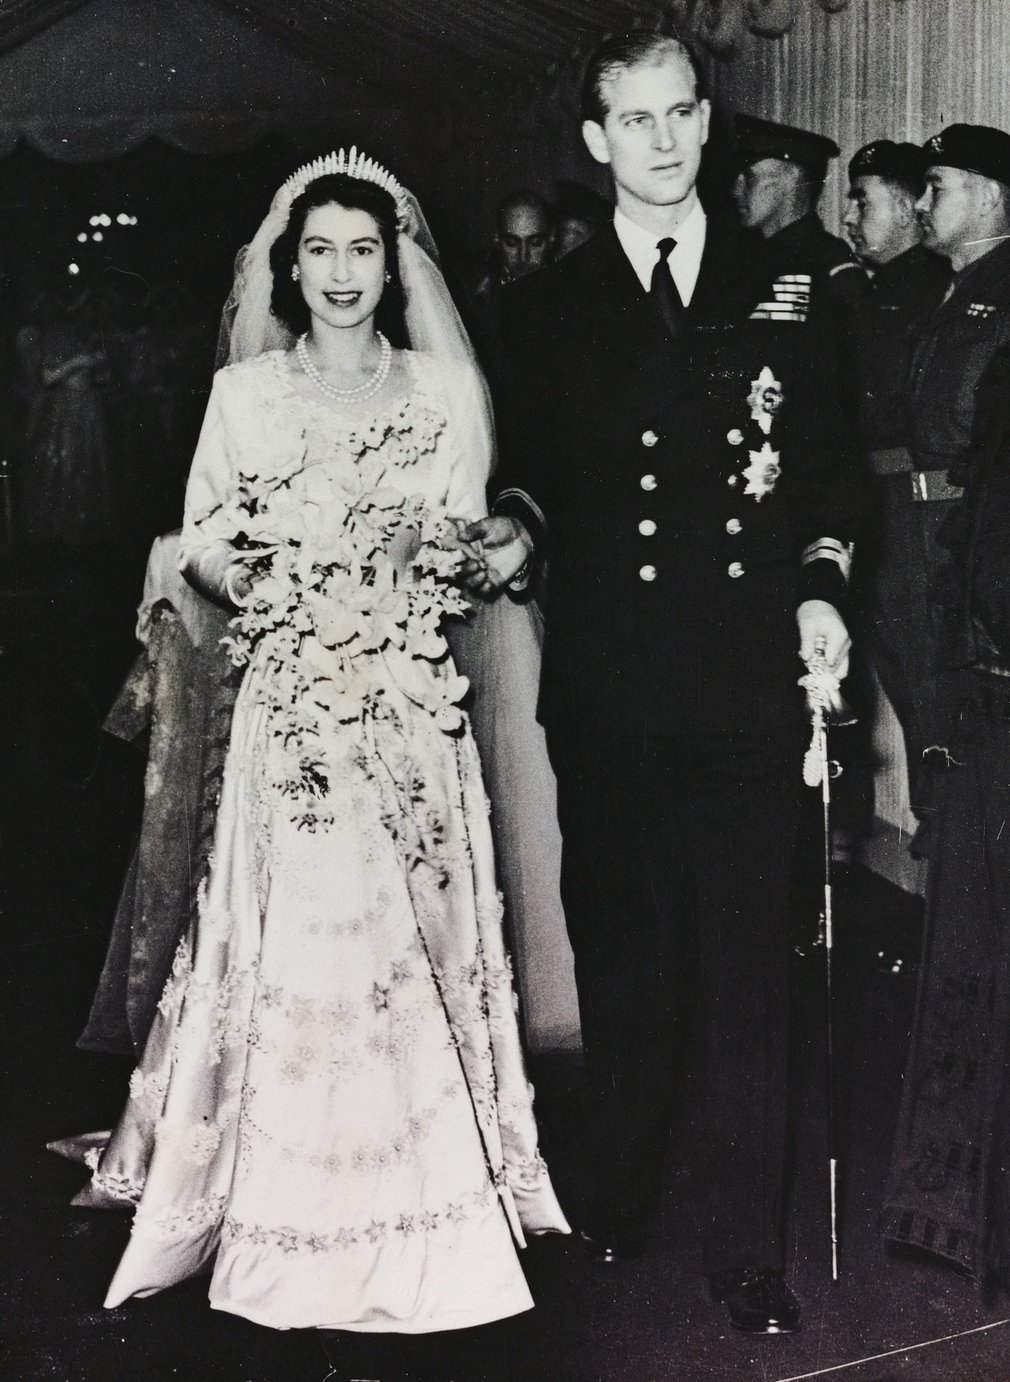 Photograph of HM Queen Elizabeth II (b.1926), when Princess Elizabeth, and HRH The Duke of Edinburgh (b.1921) leaving Westminster Abbey on their wedding day.The wedding dress was designed by Norman Hartnell and was embroidered with hundreds